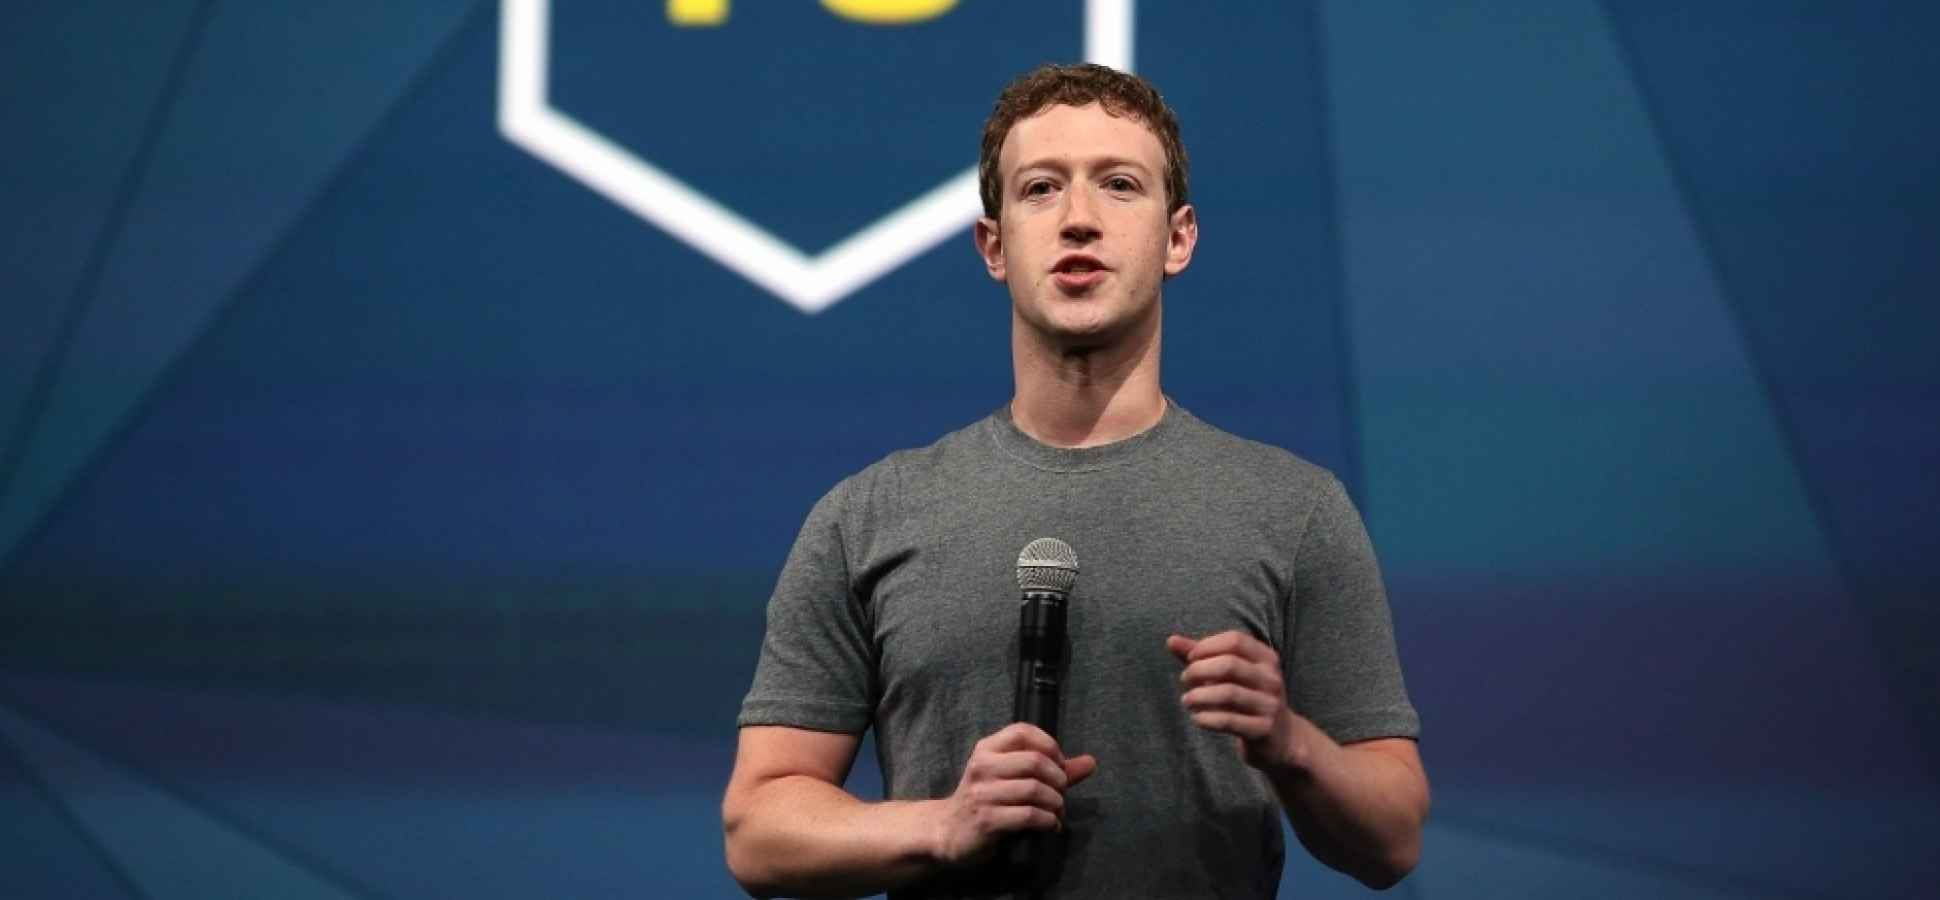 356c318944 26 Inspiring Quotes From Facebook Founder Mark Zuckerberg